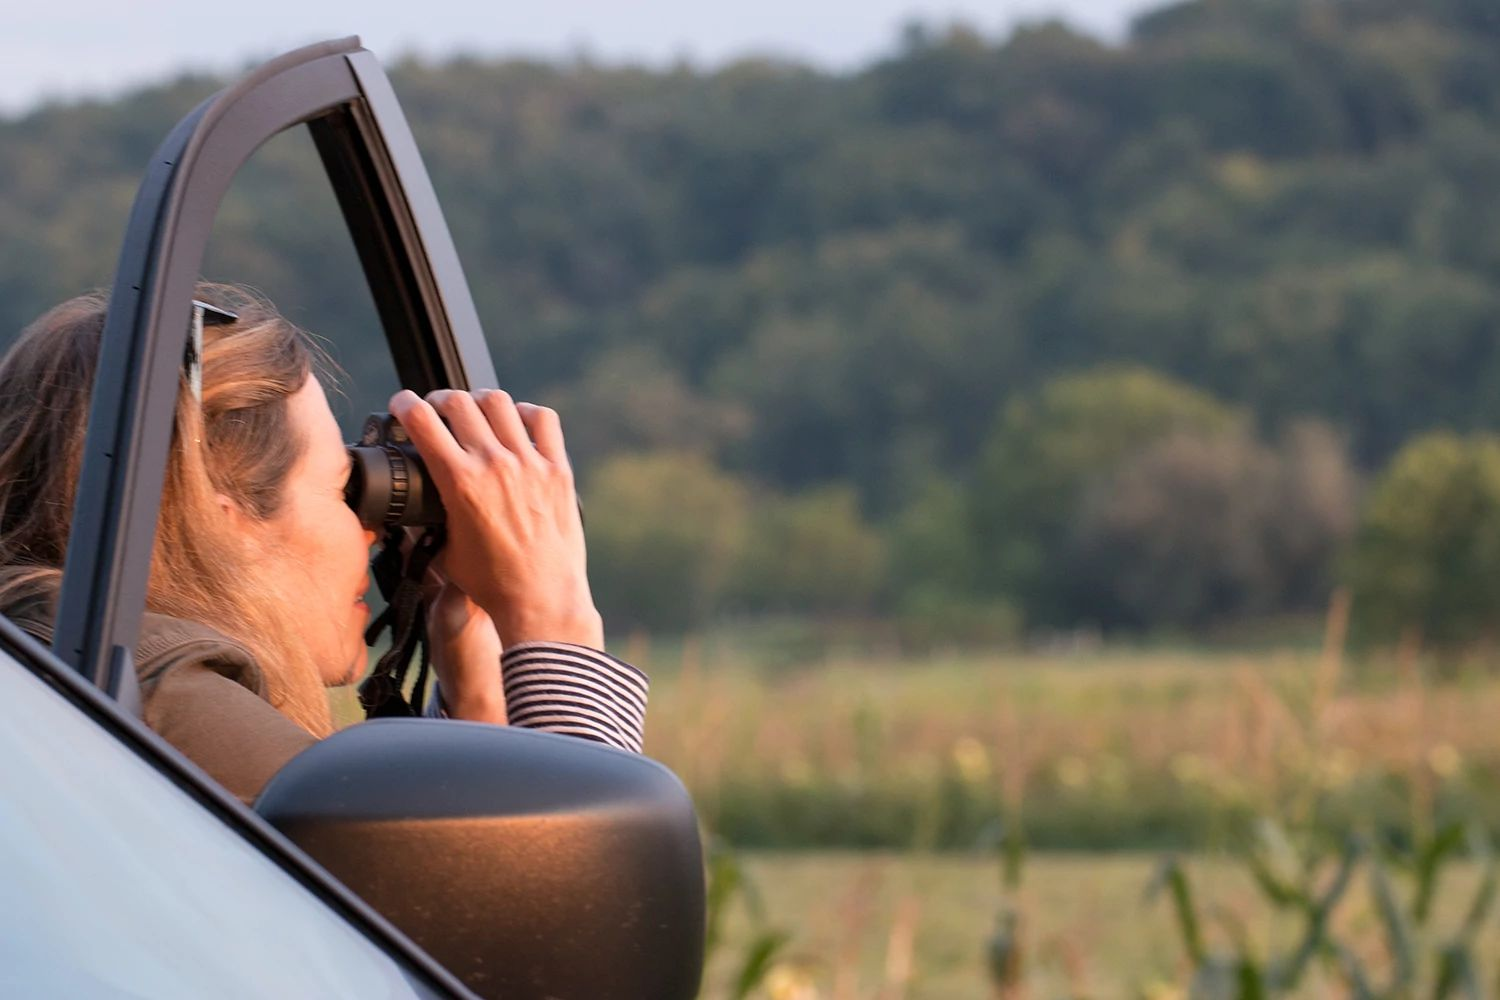 An image of a woman looking through binoculars while sitting in a vehicle.